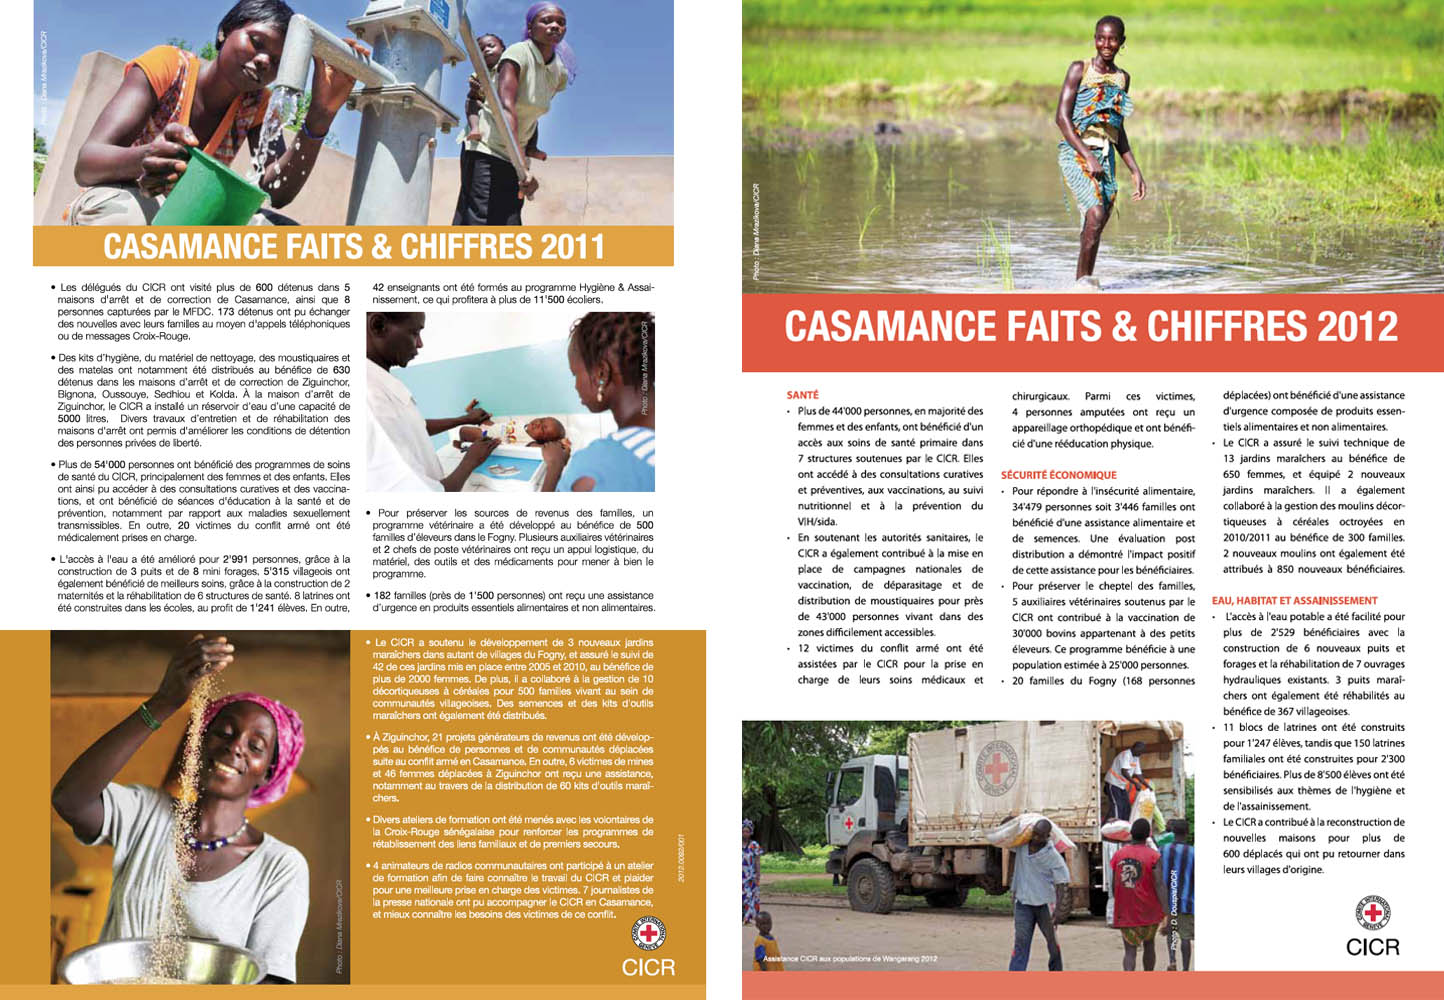 Casamance facts brochure 2011, 2012